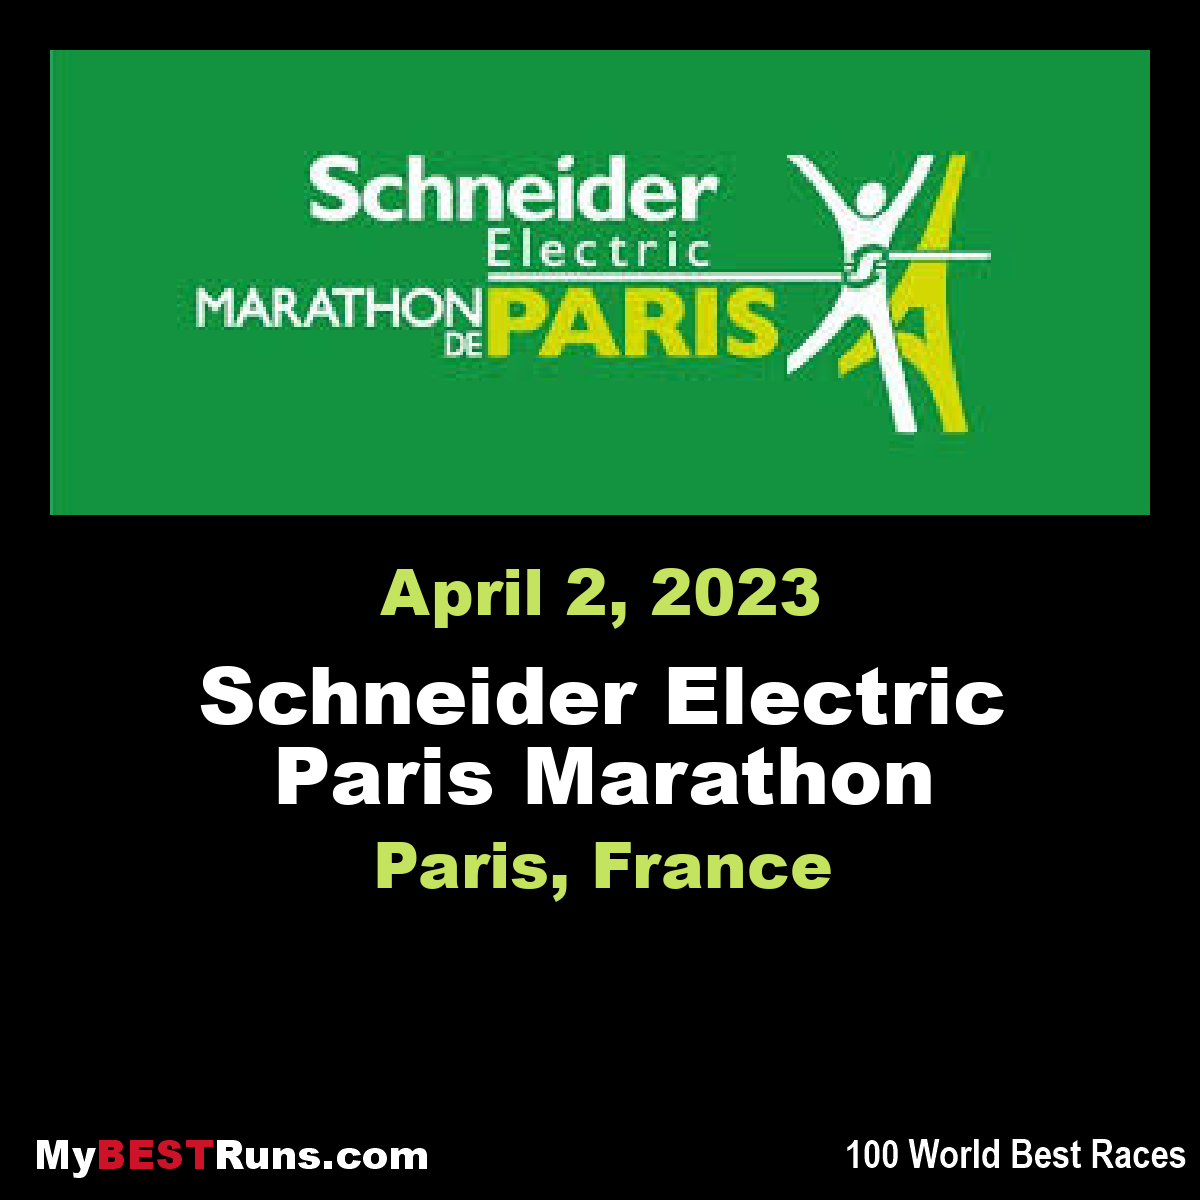 schneider electric paris marathon paris france 4 17 2019 my best runs worlds best road. Black Bedroom Furniture Sets. Home Design Ideas